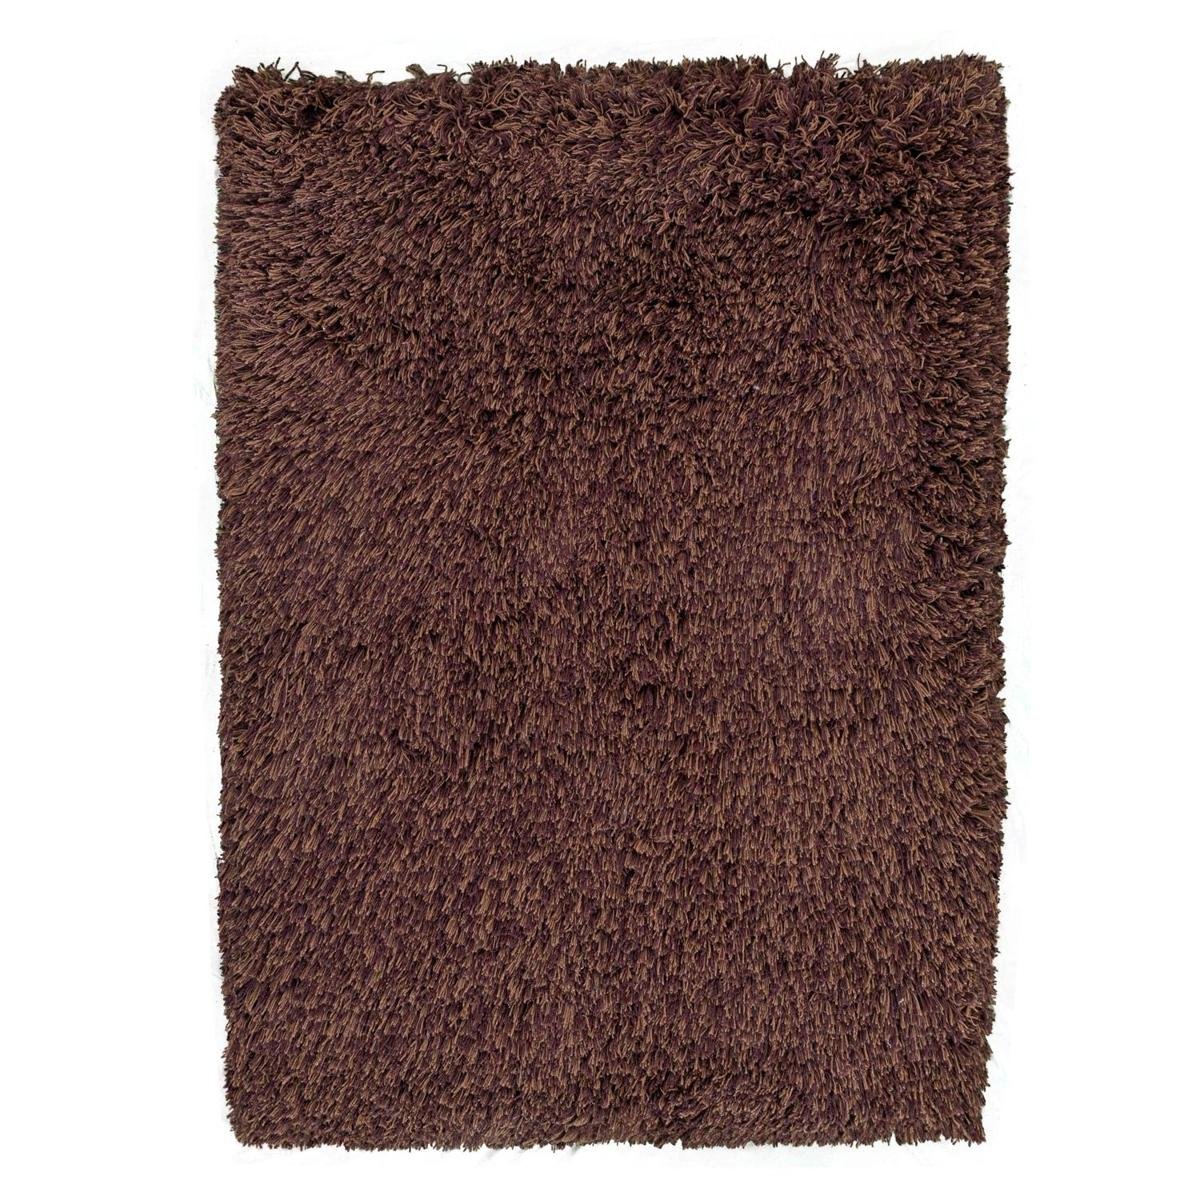 Highlander Shaggy Rug Mixed Brown 140x200cm 1